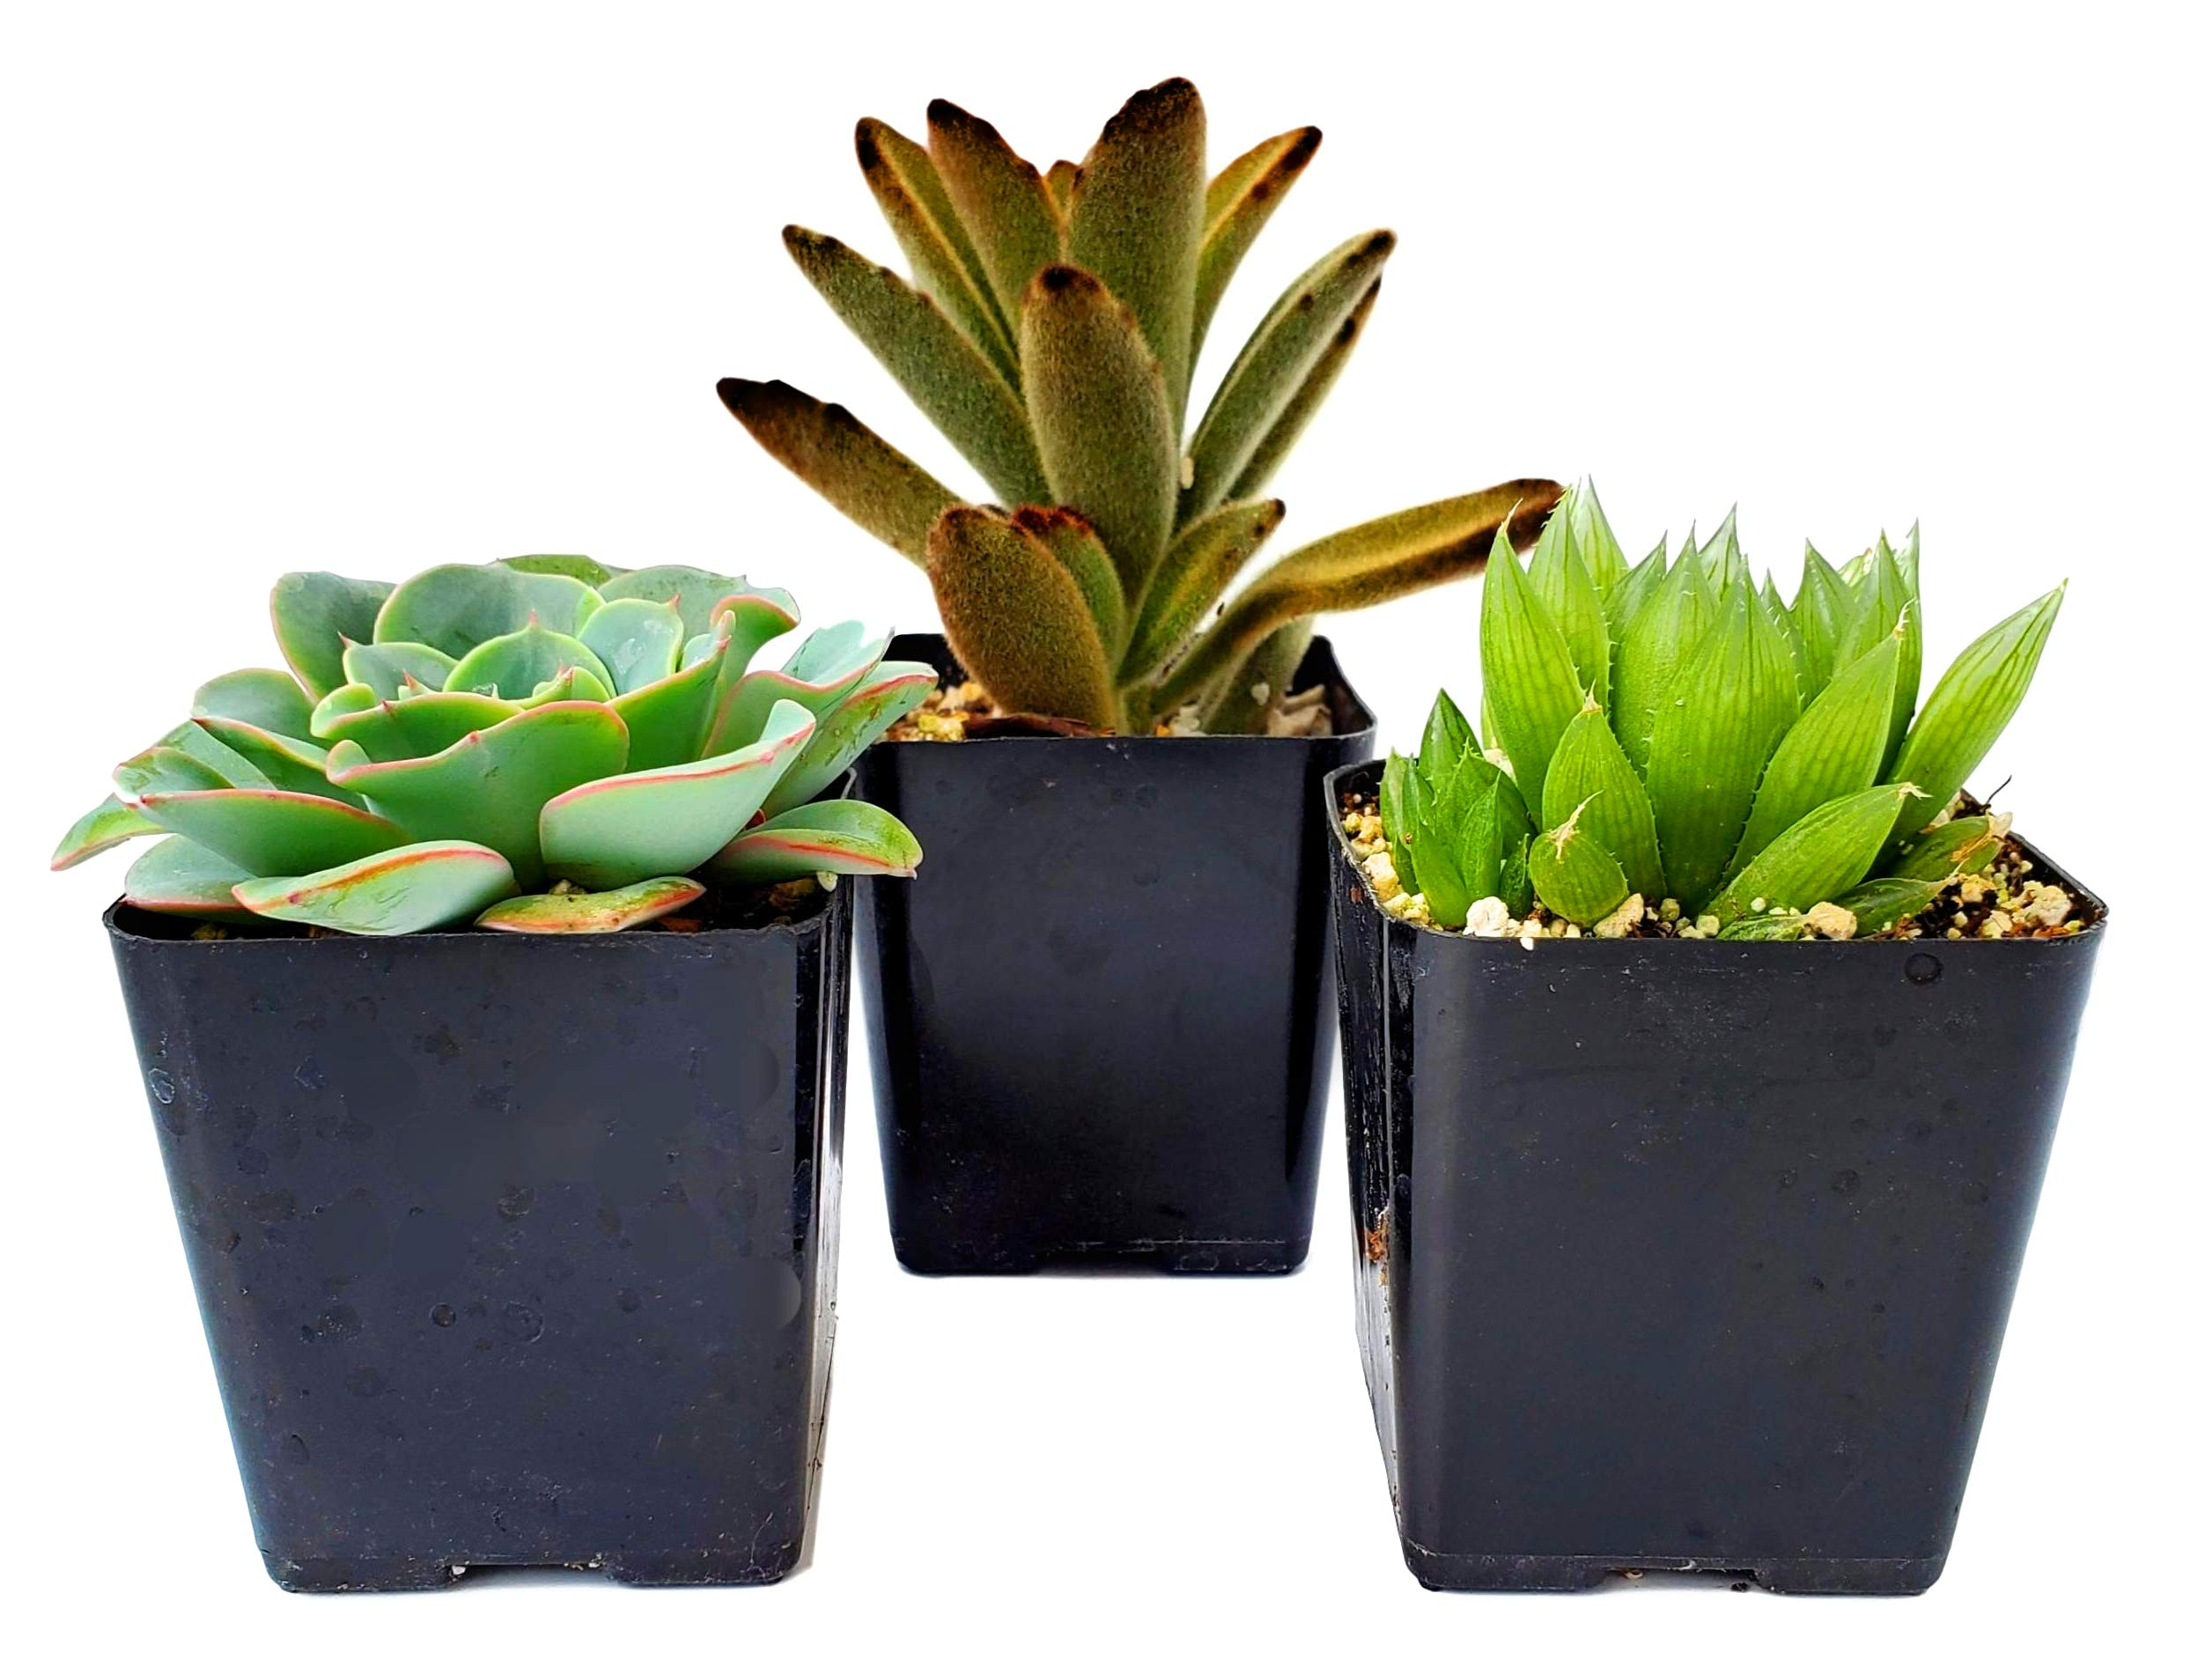 FATPLANTS Succulent Plants in Gift Box | Rooted in 2 inch Planter Pots with Soil | Living Indoor or Outdoor Plants | Home Decor, Gifts, Shower & Wedding Decorations (3)